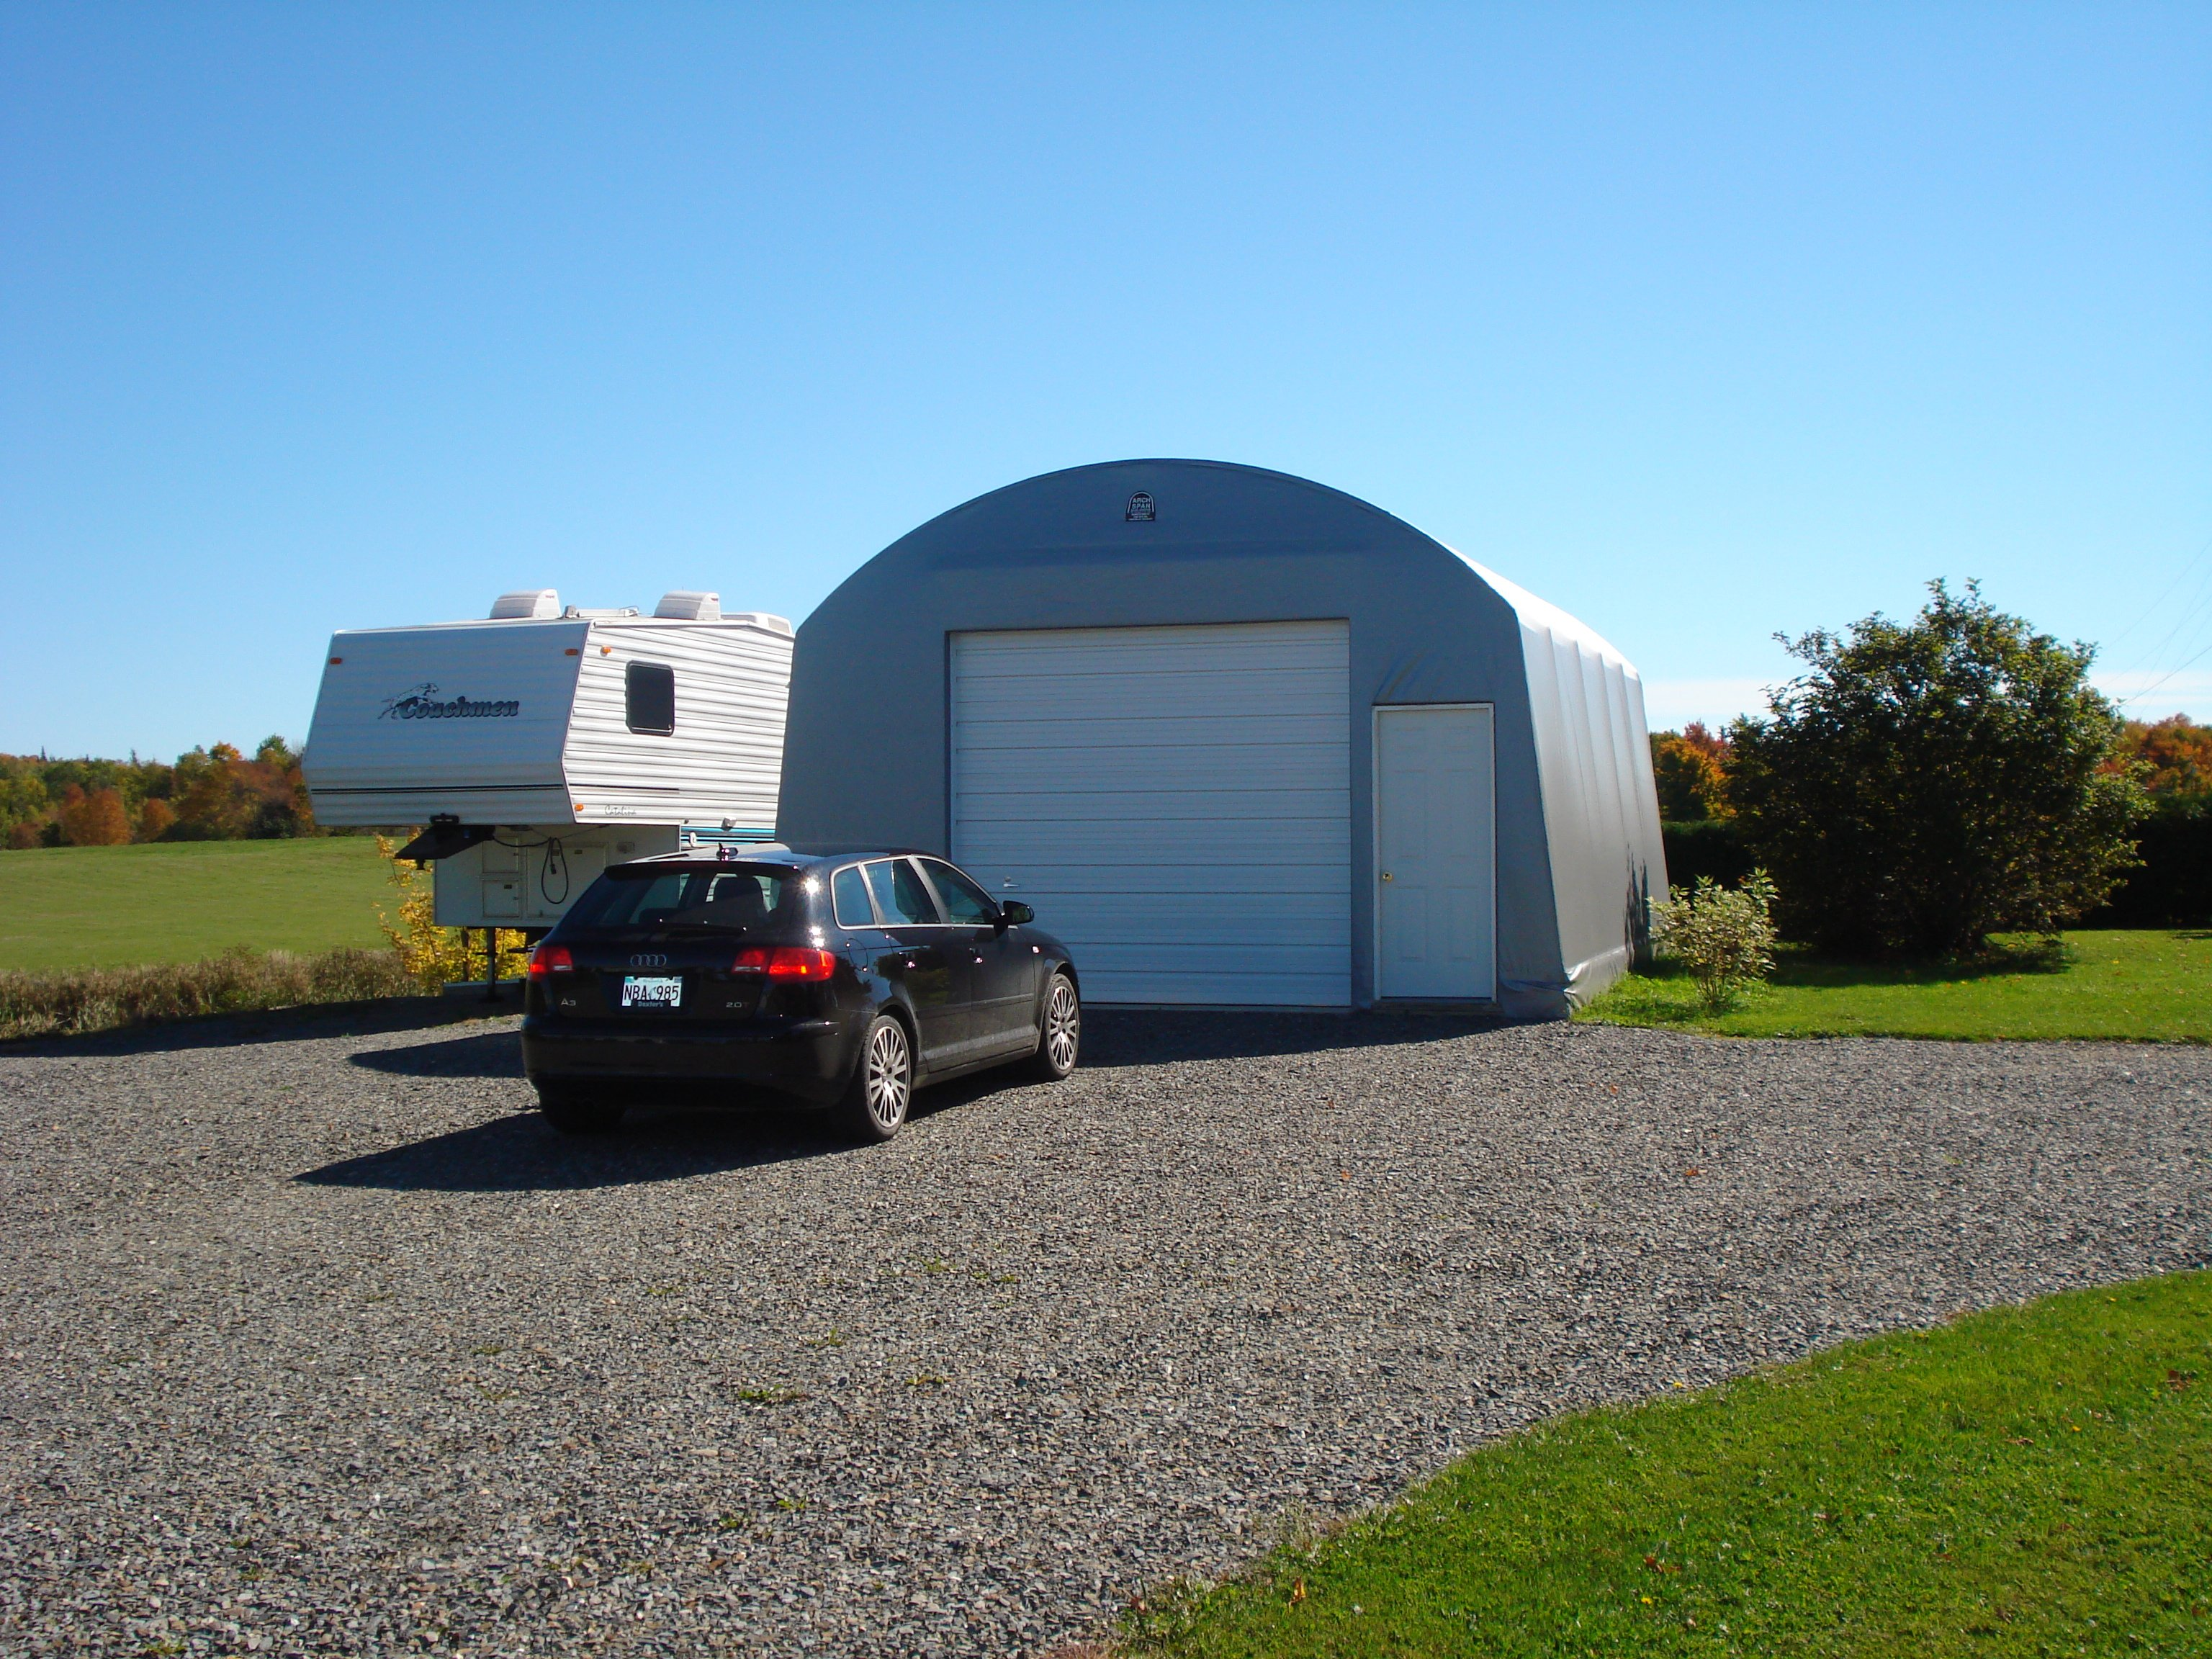 TWO CAR GARAGES cover-tech inc. call toll free 1-888-325-5757